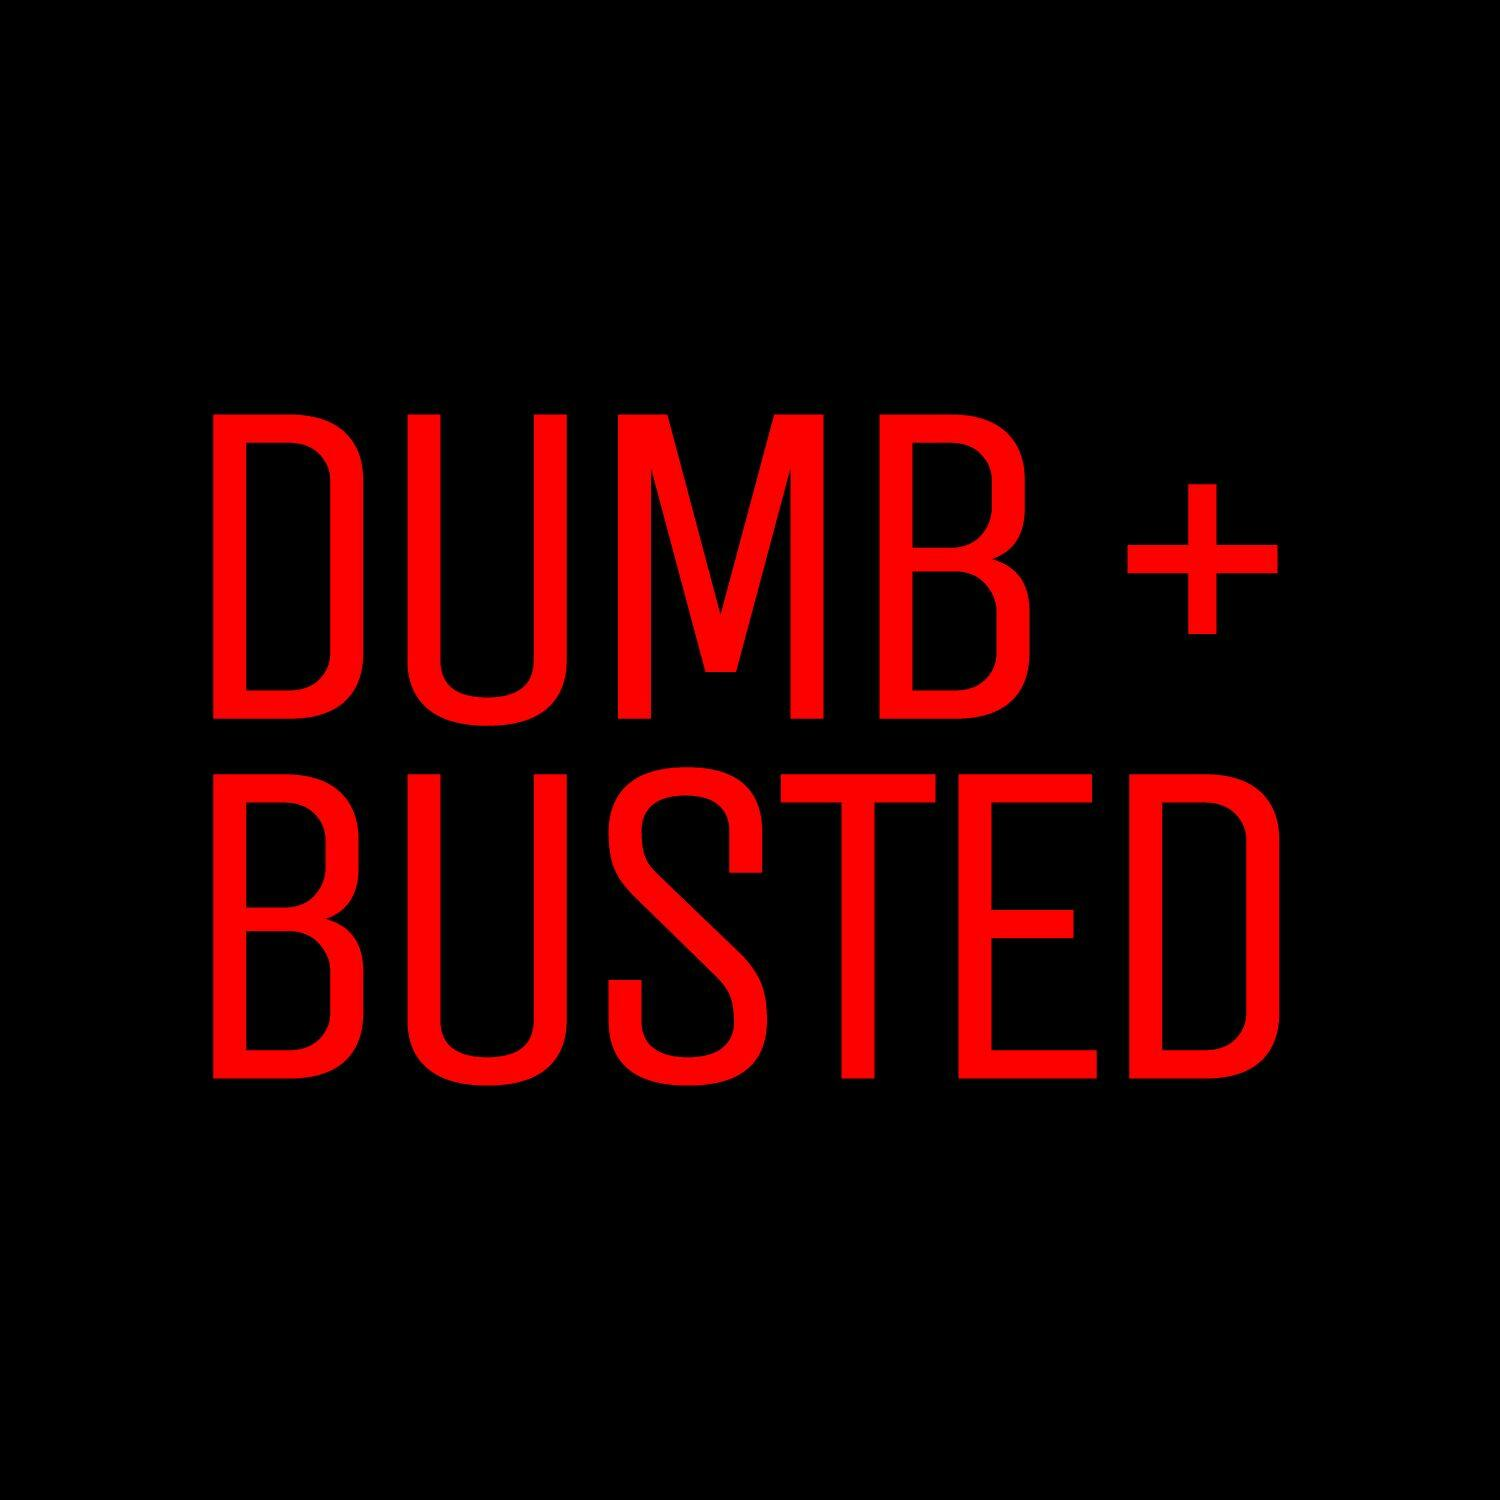 Listen to the Dumb and Busted Episode - Episode 47: Money Problems